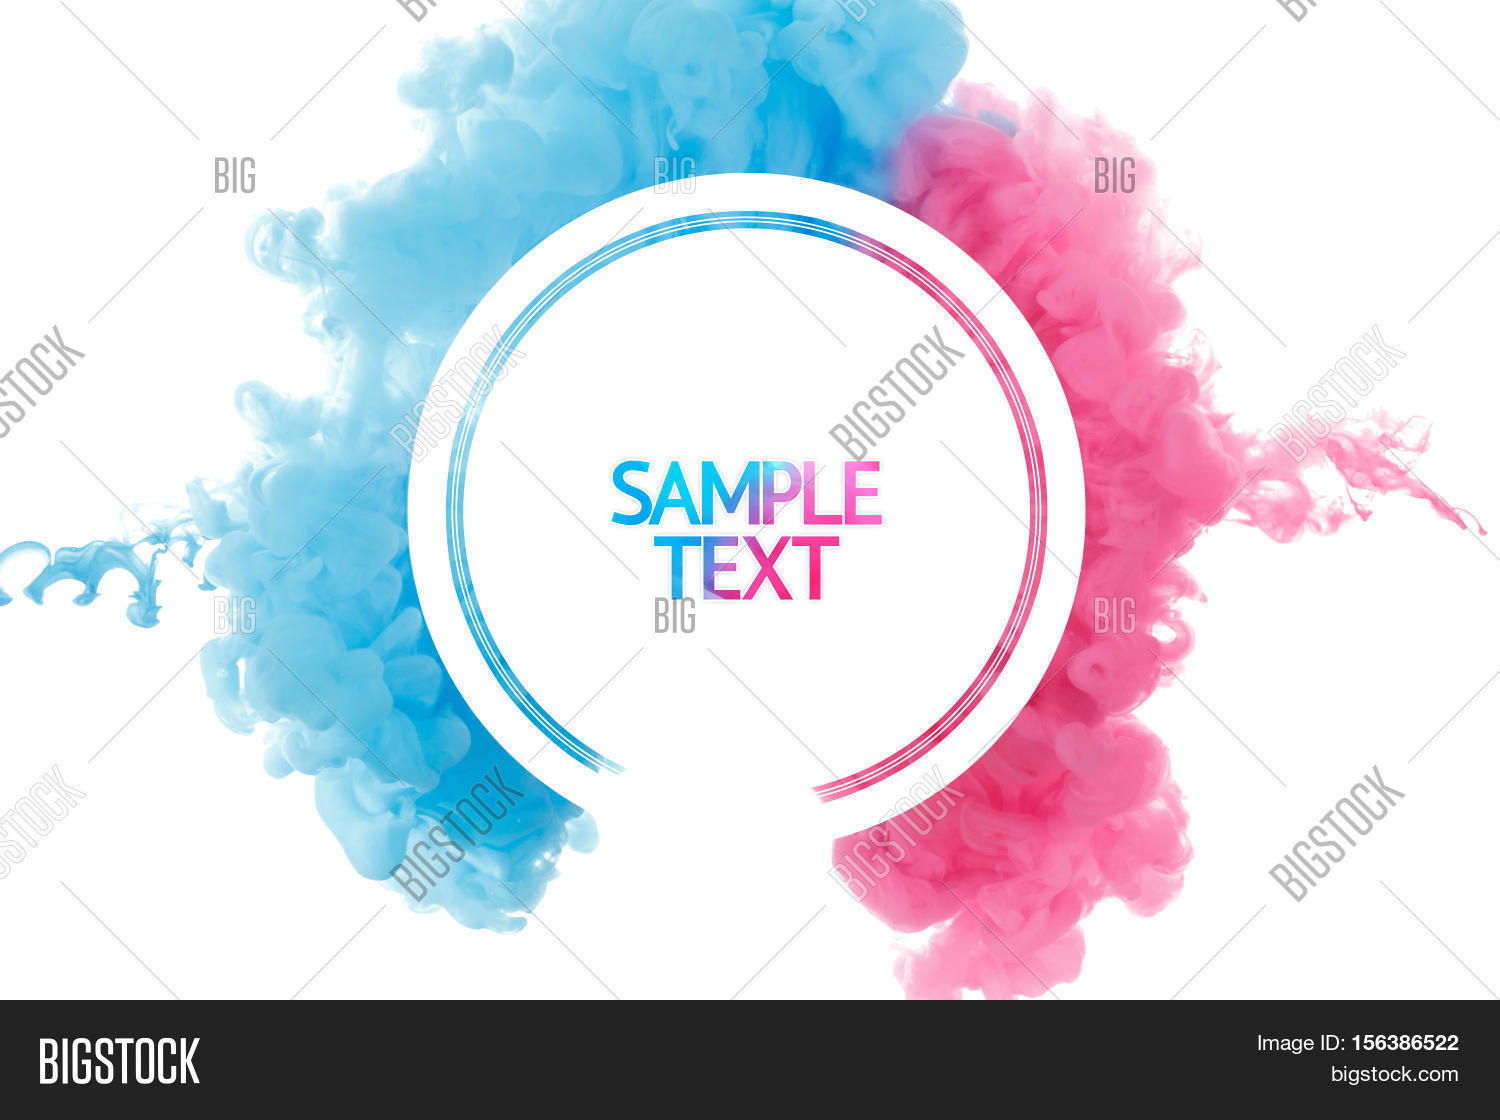 Abstract Template   Color Paint Splash Image Photo Free Trial Bigstock